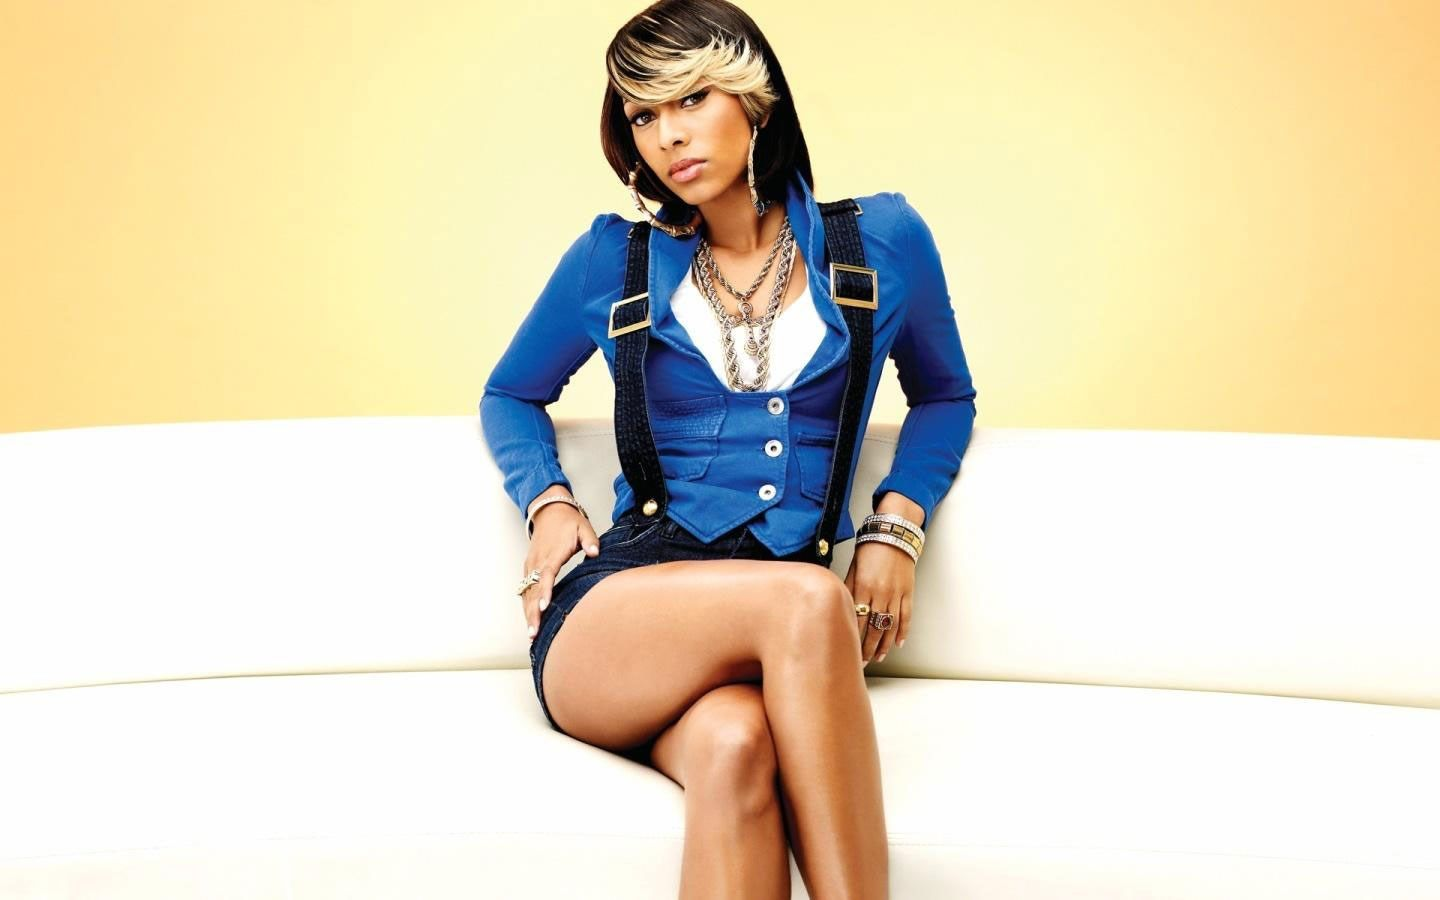 Free Wallpaper And Screensavers For Keri Hilson 1440x900 98 Kb Outfits Keri Hilson Cute Outfits